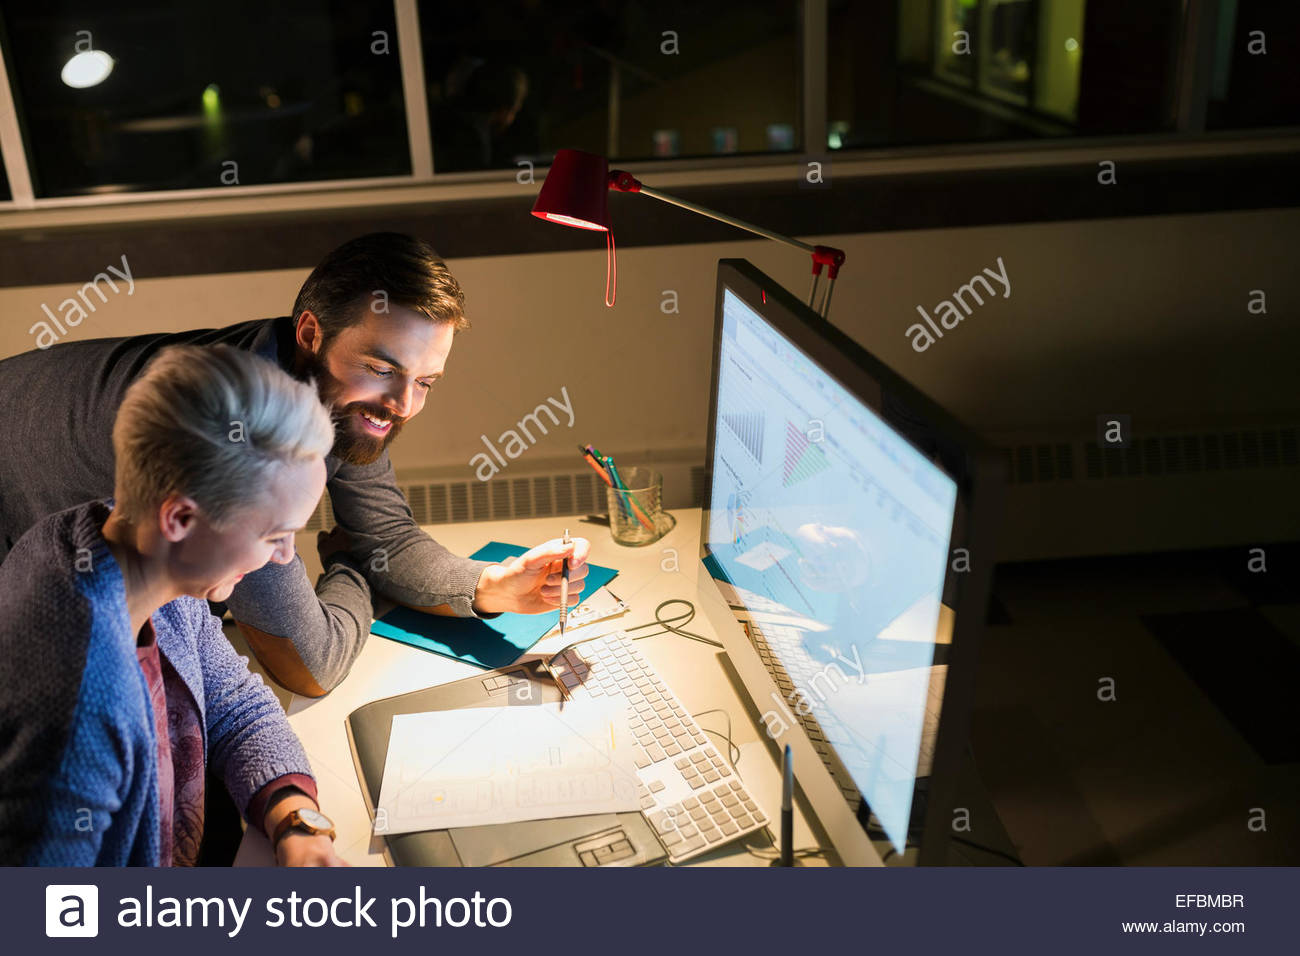 Business people working late at computer in office - Stock Image